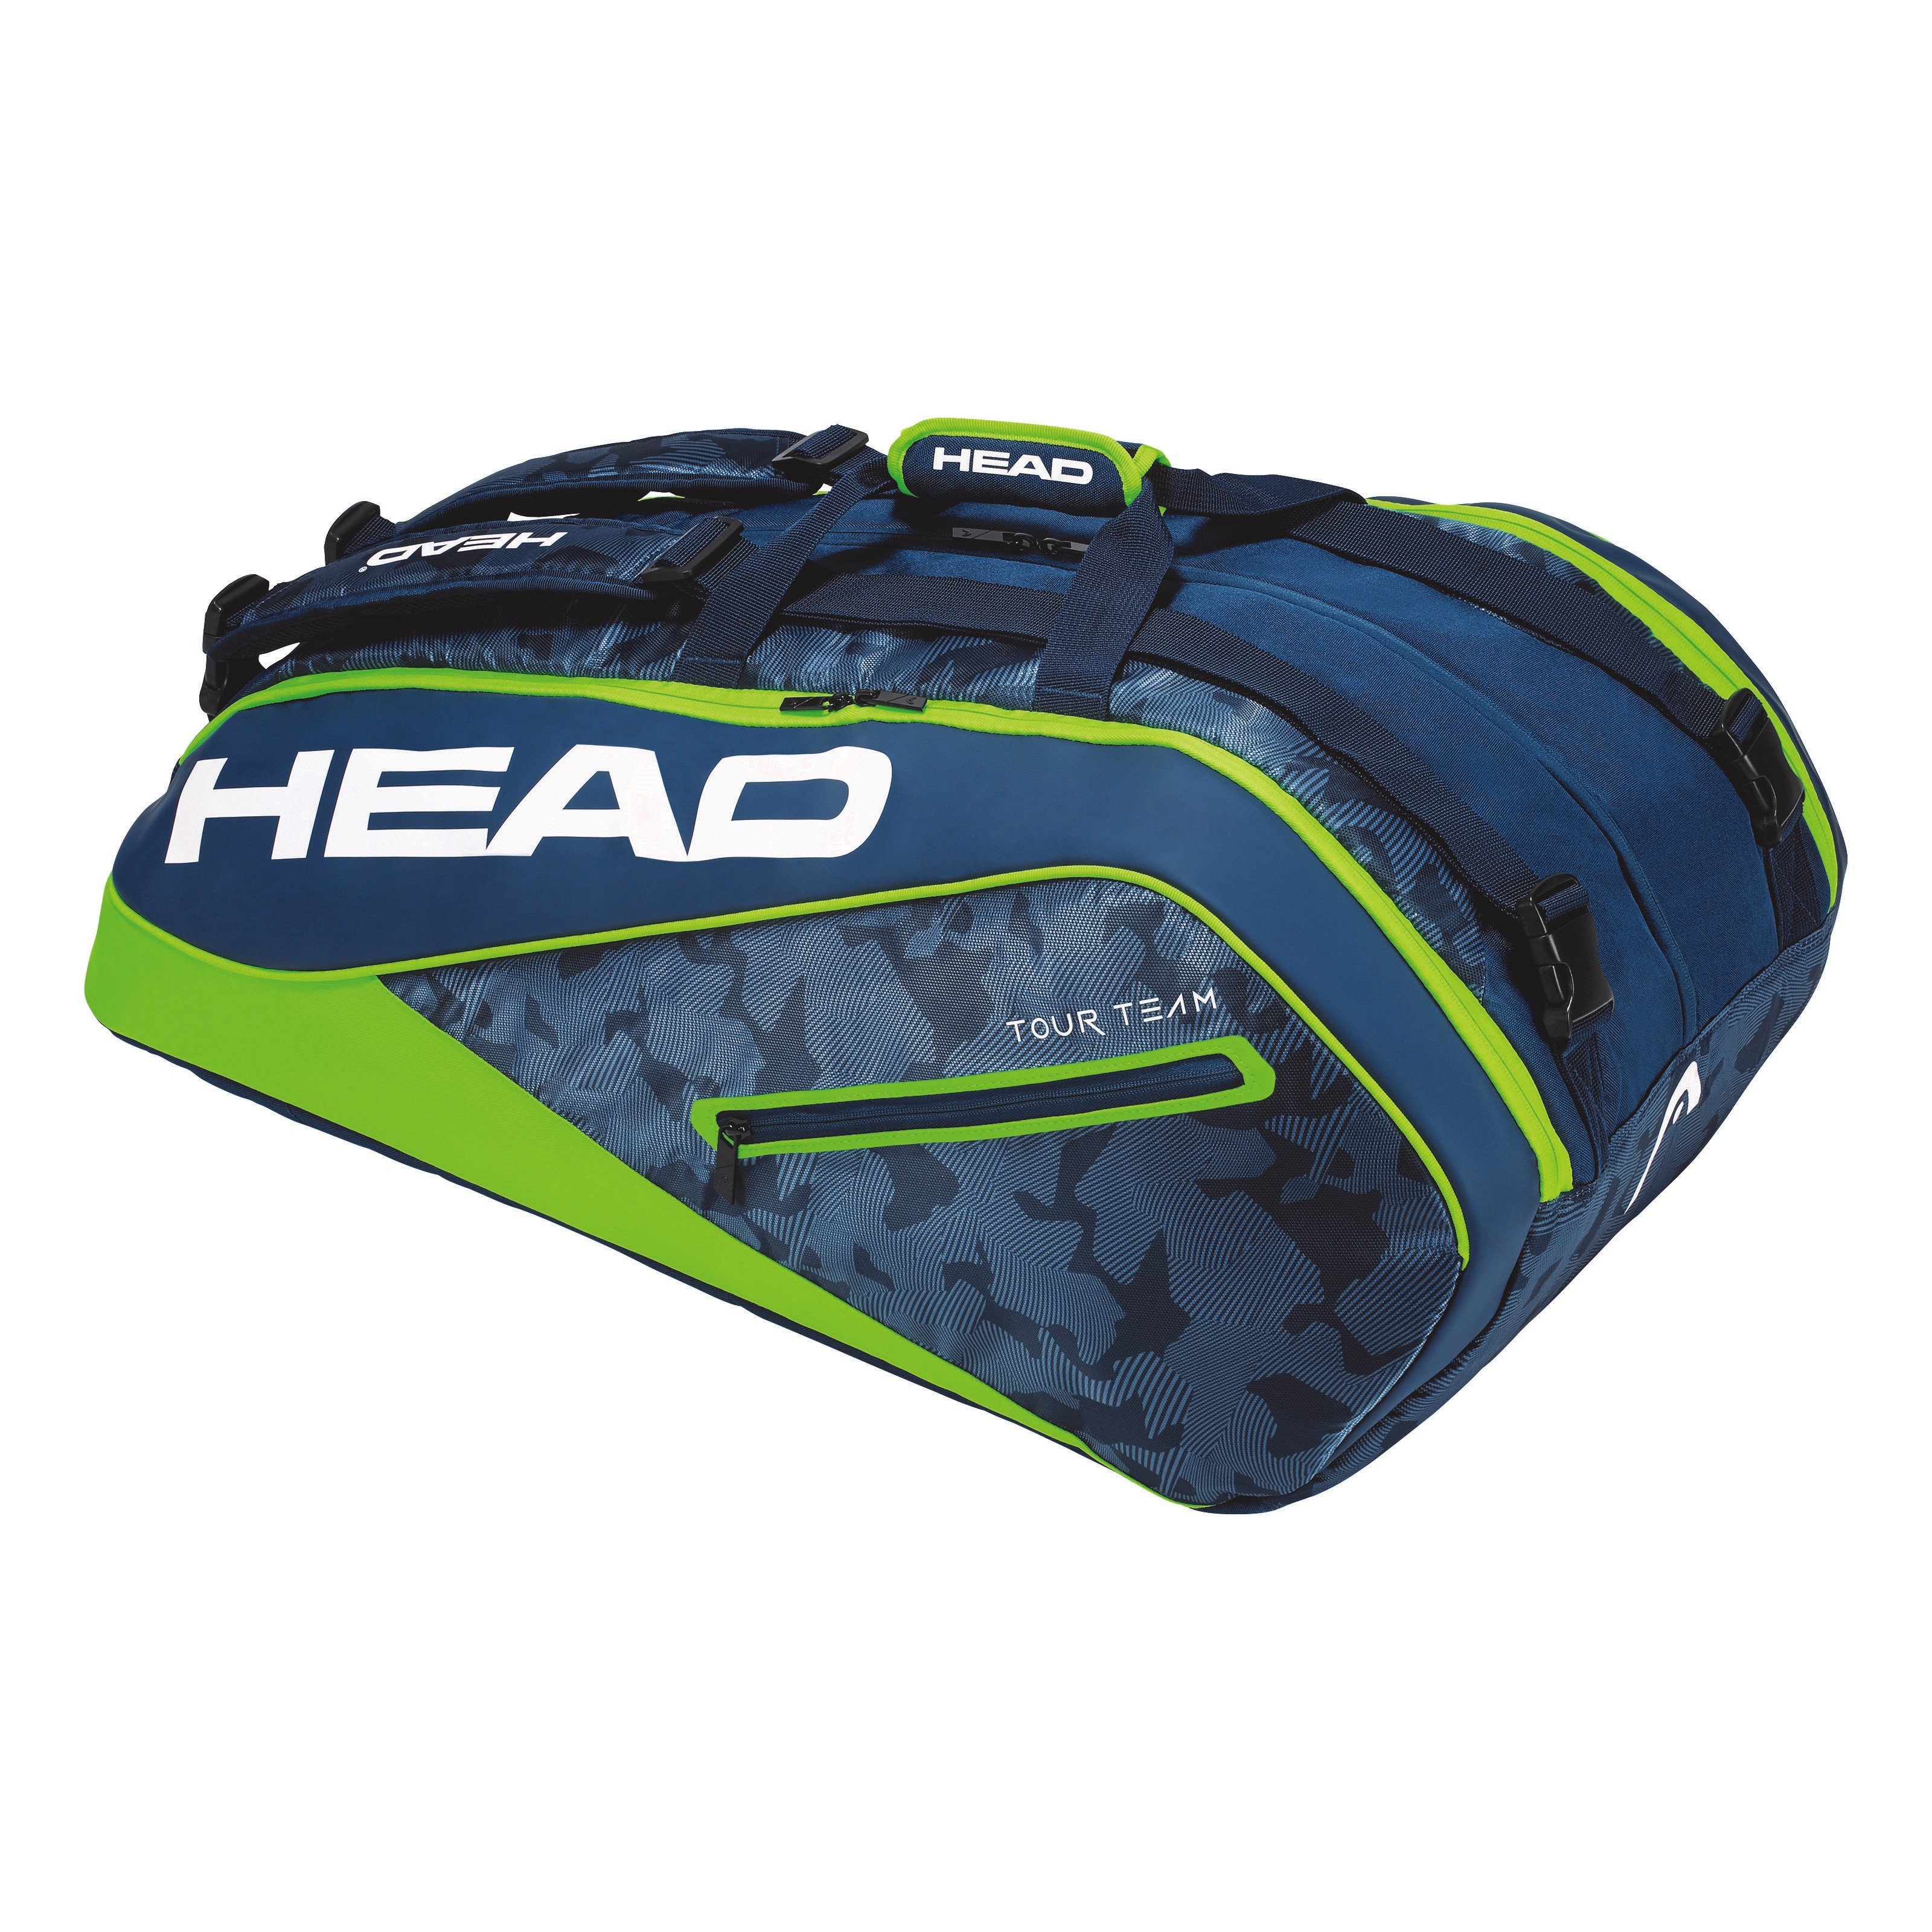 HEAD Tour Team 12R Monstercombi navi-green